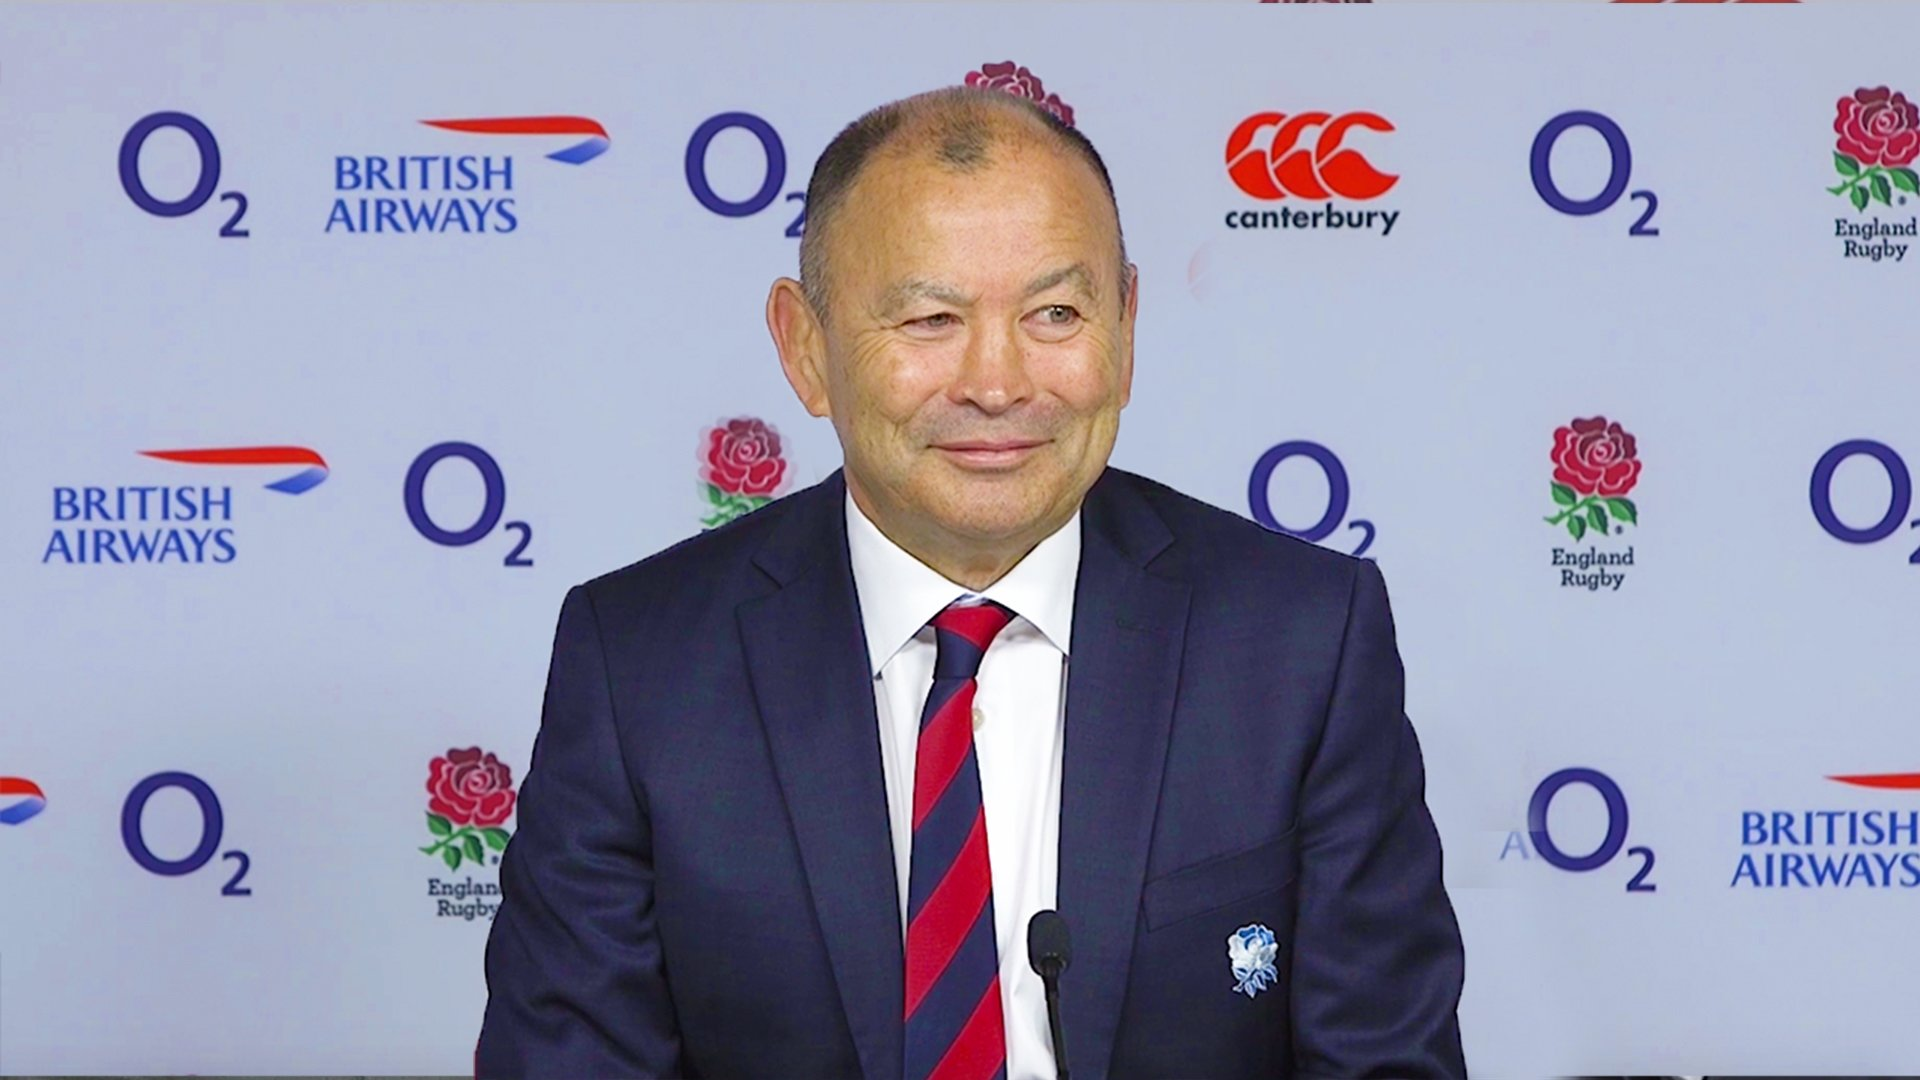 Eddie Jones gives England outrageous and unrealistic target in first Six Nations press conference